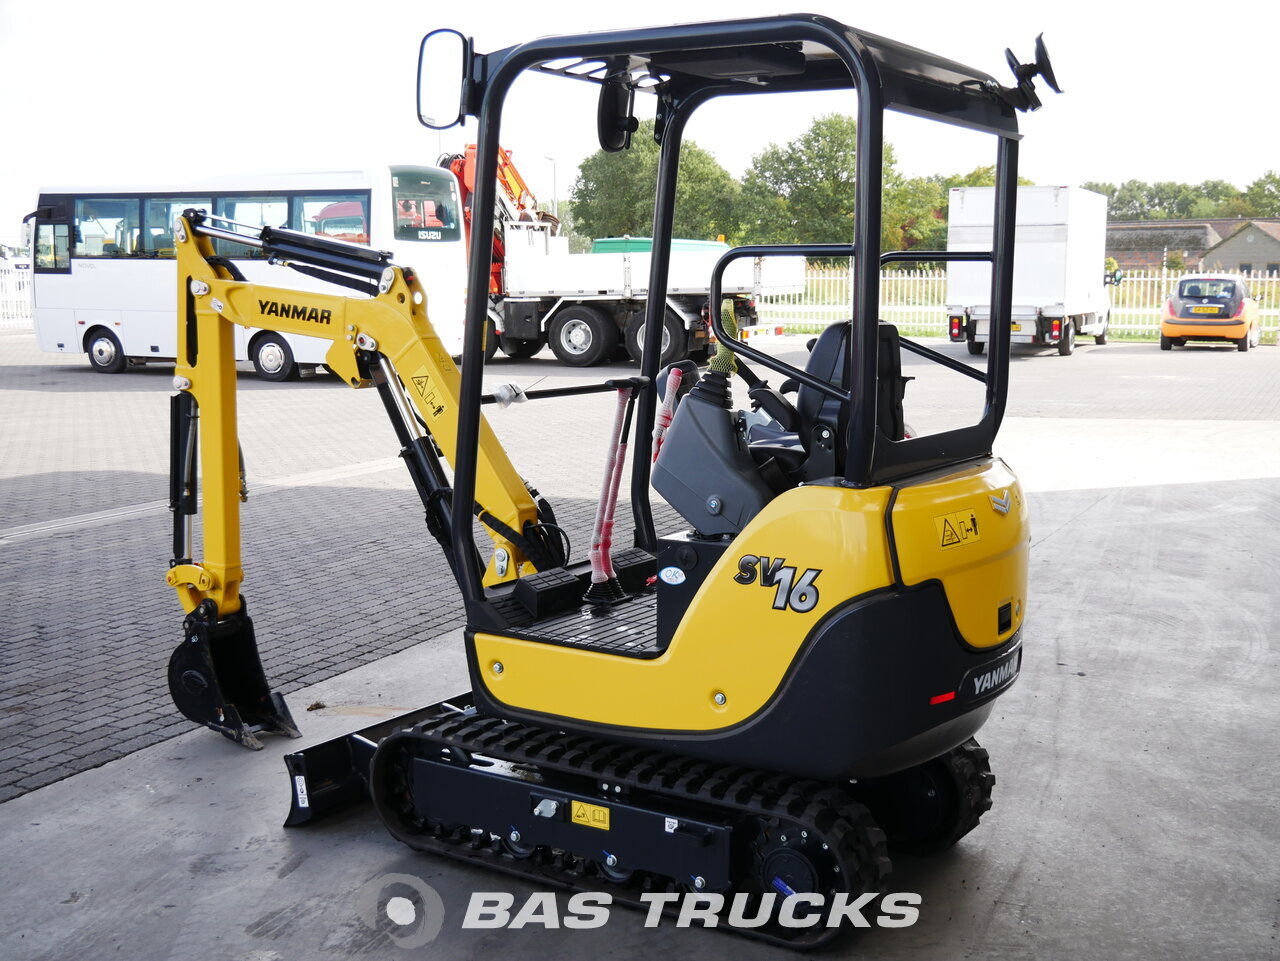 For sale at BAS Trucks: YANMAR SV16 Track 01/2018